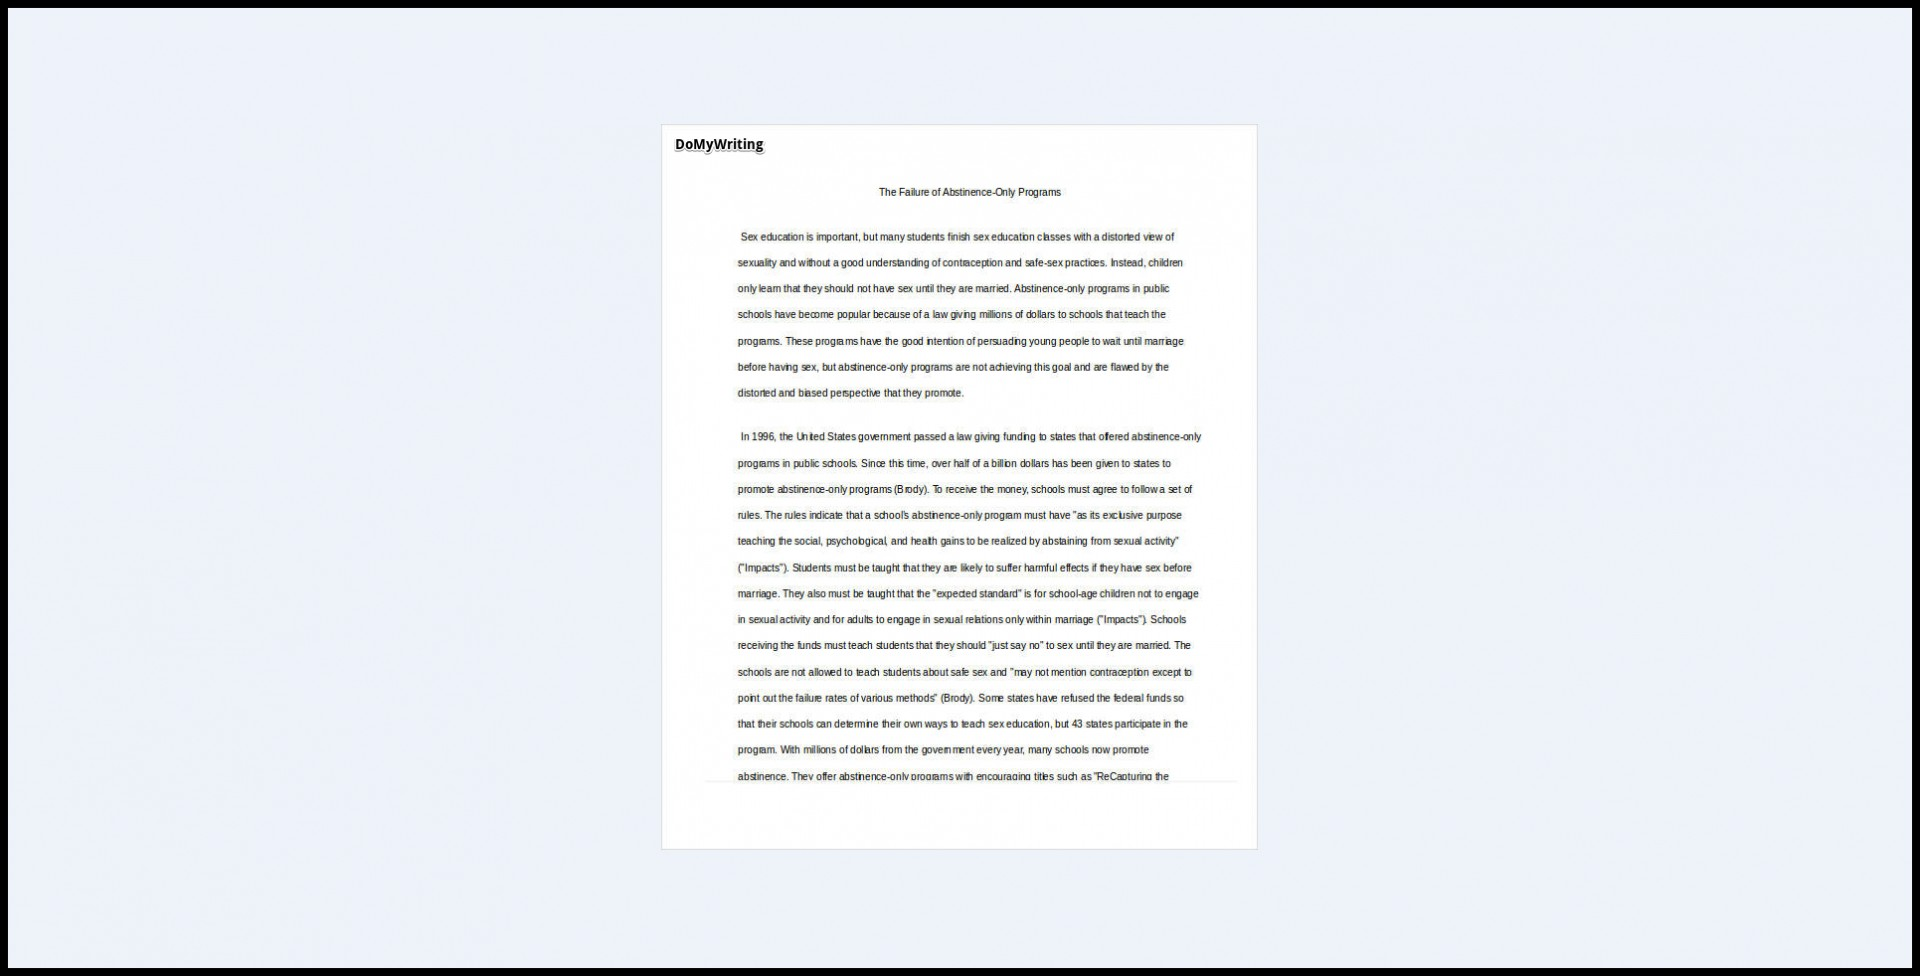 009 Pursuasive Essay Example Persuasive Stirring Structure Topics For Middle School About Music 1920